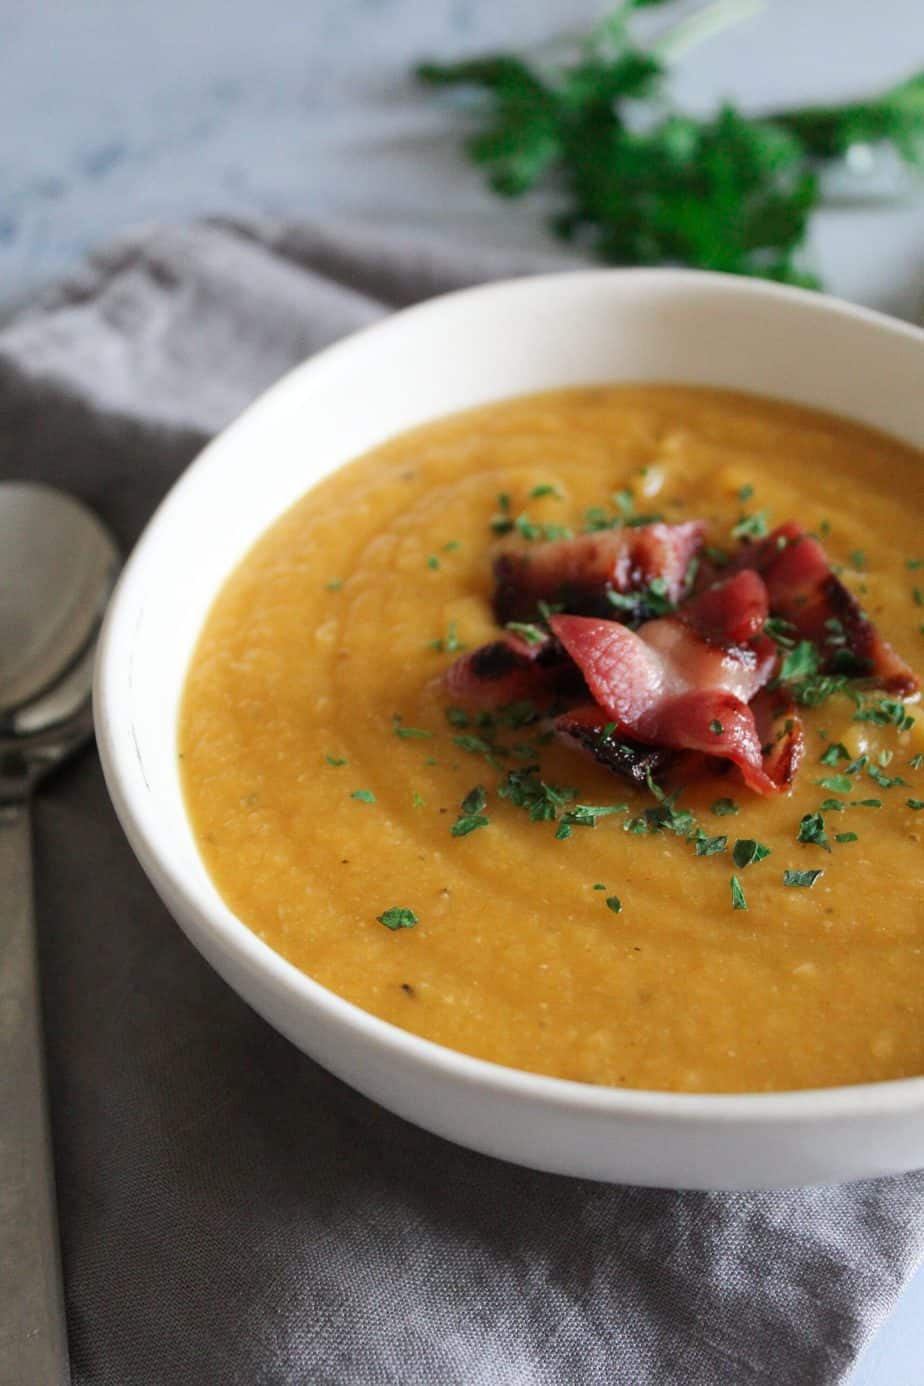 This Red Lentil soup is a big bowl of warmth and comfort. It's so easy to make, thick and satisfying with a hearty bite of bacon, and full of healthy veggies.